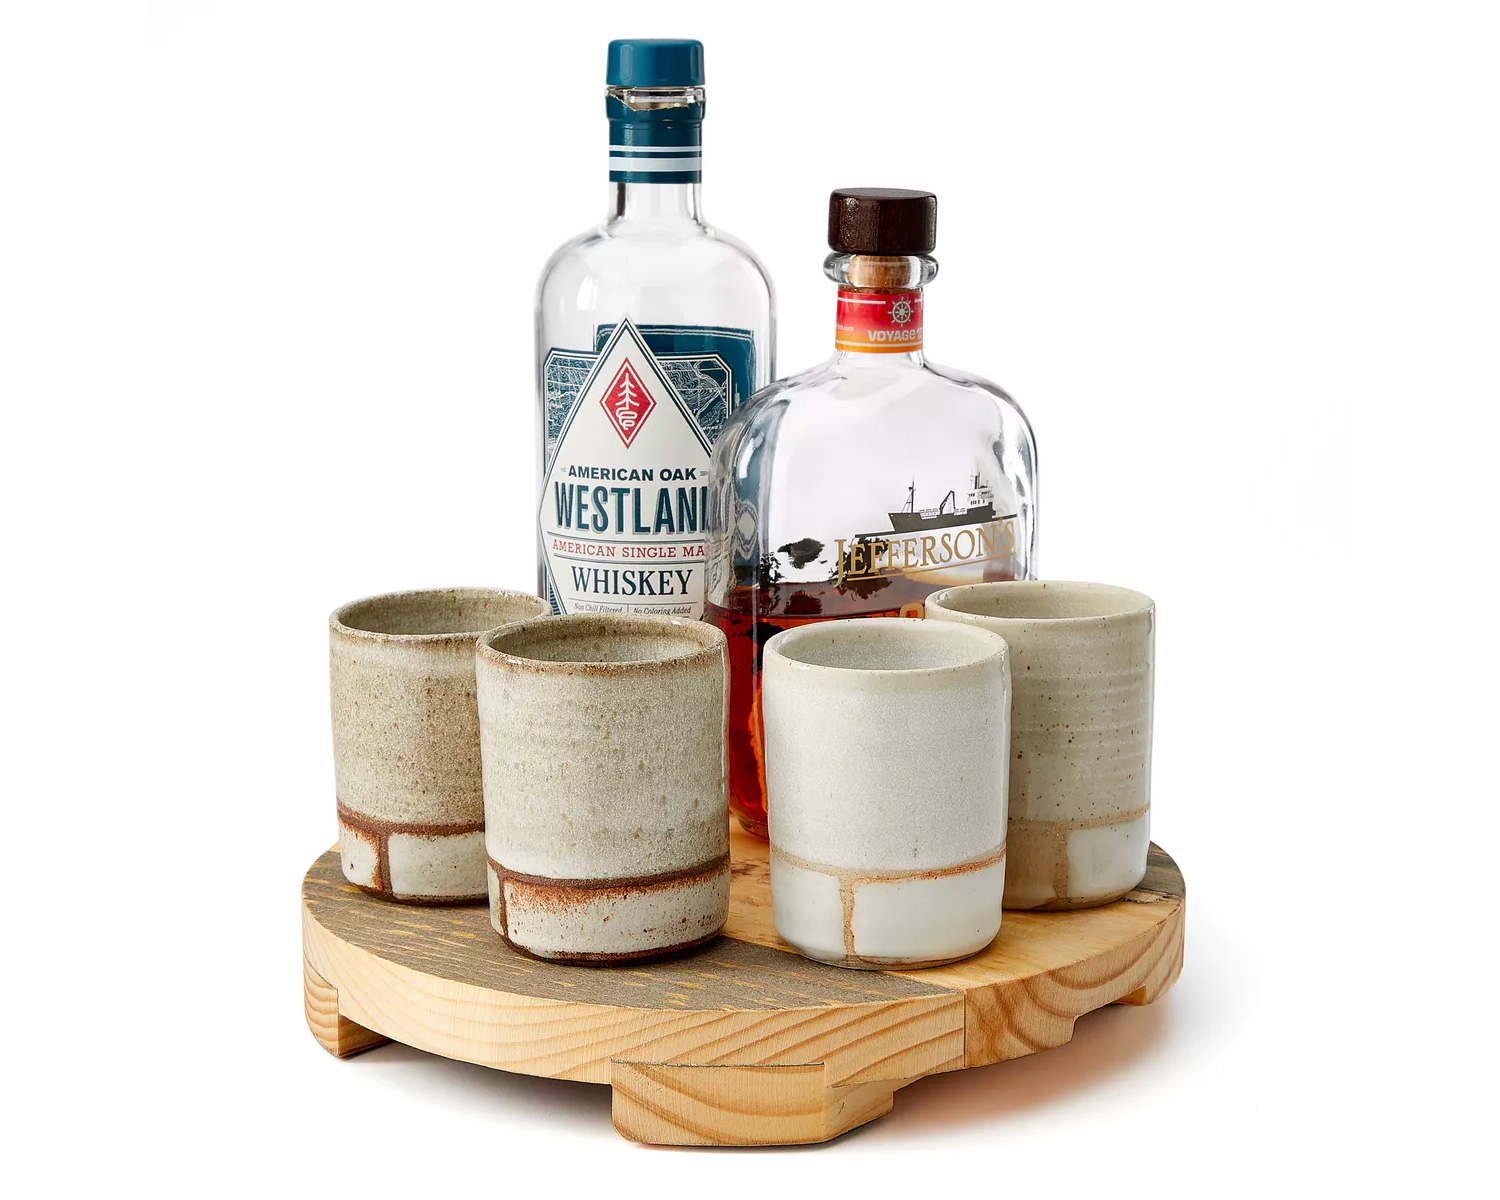 Enjoy Your Whiskey in a Handmade Clay Tumbler at werd.com